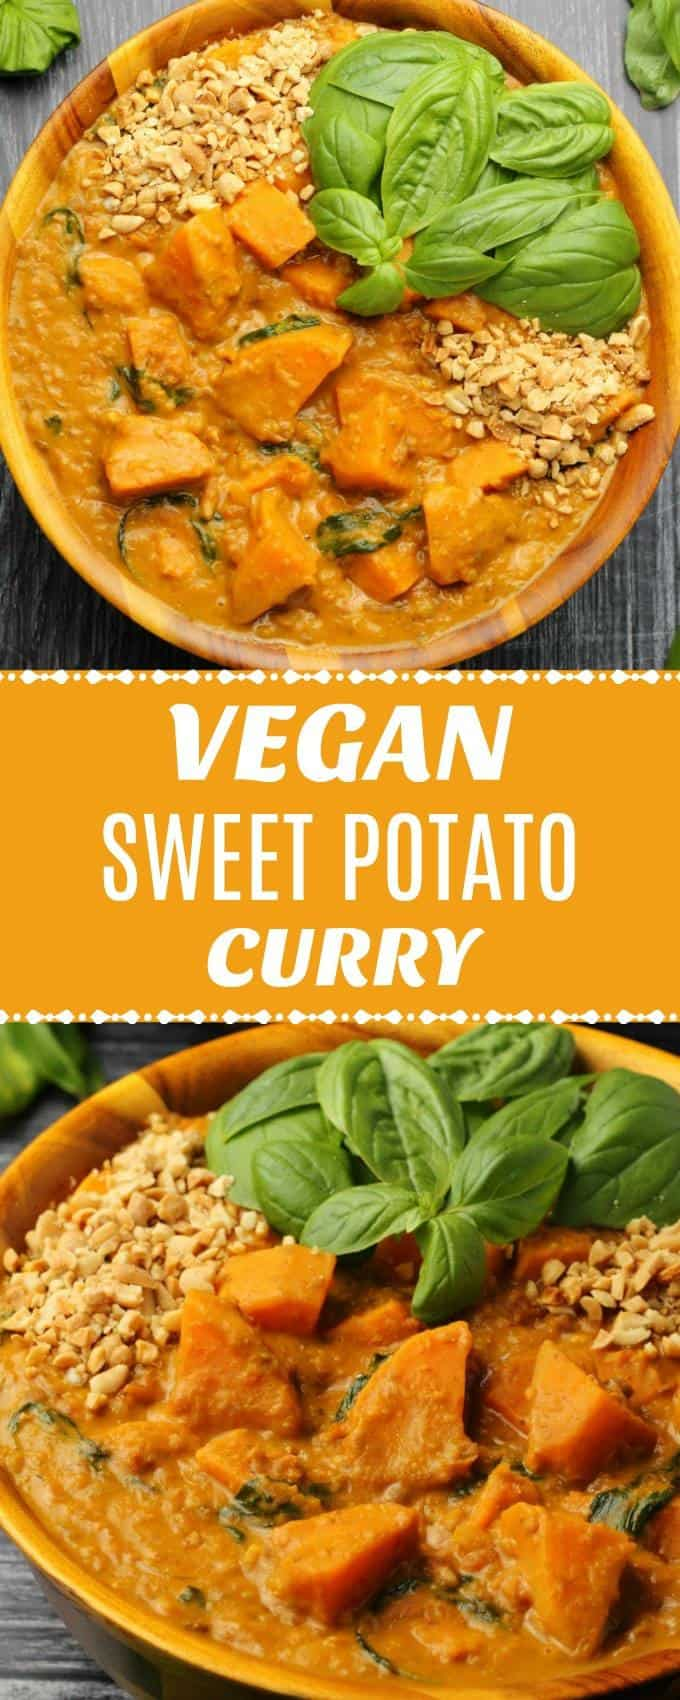 Rich and satisfying vegan sweet potato curry. Hearty, comforting and insanely good, this vegan curry is really simple to make with very impressive results. | lovingitvegan.com